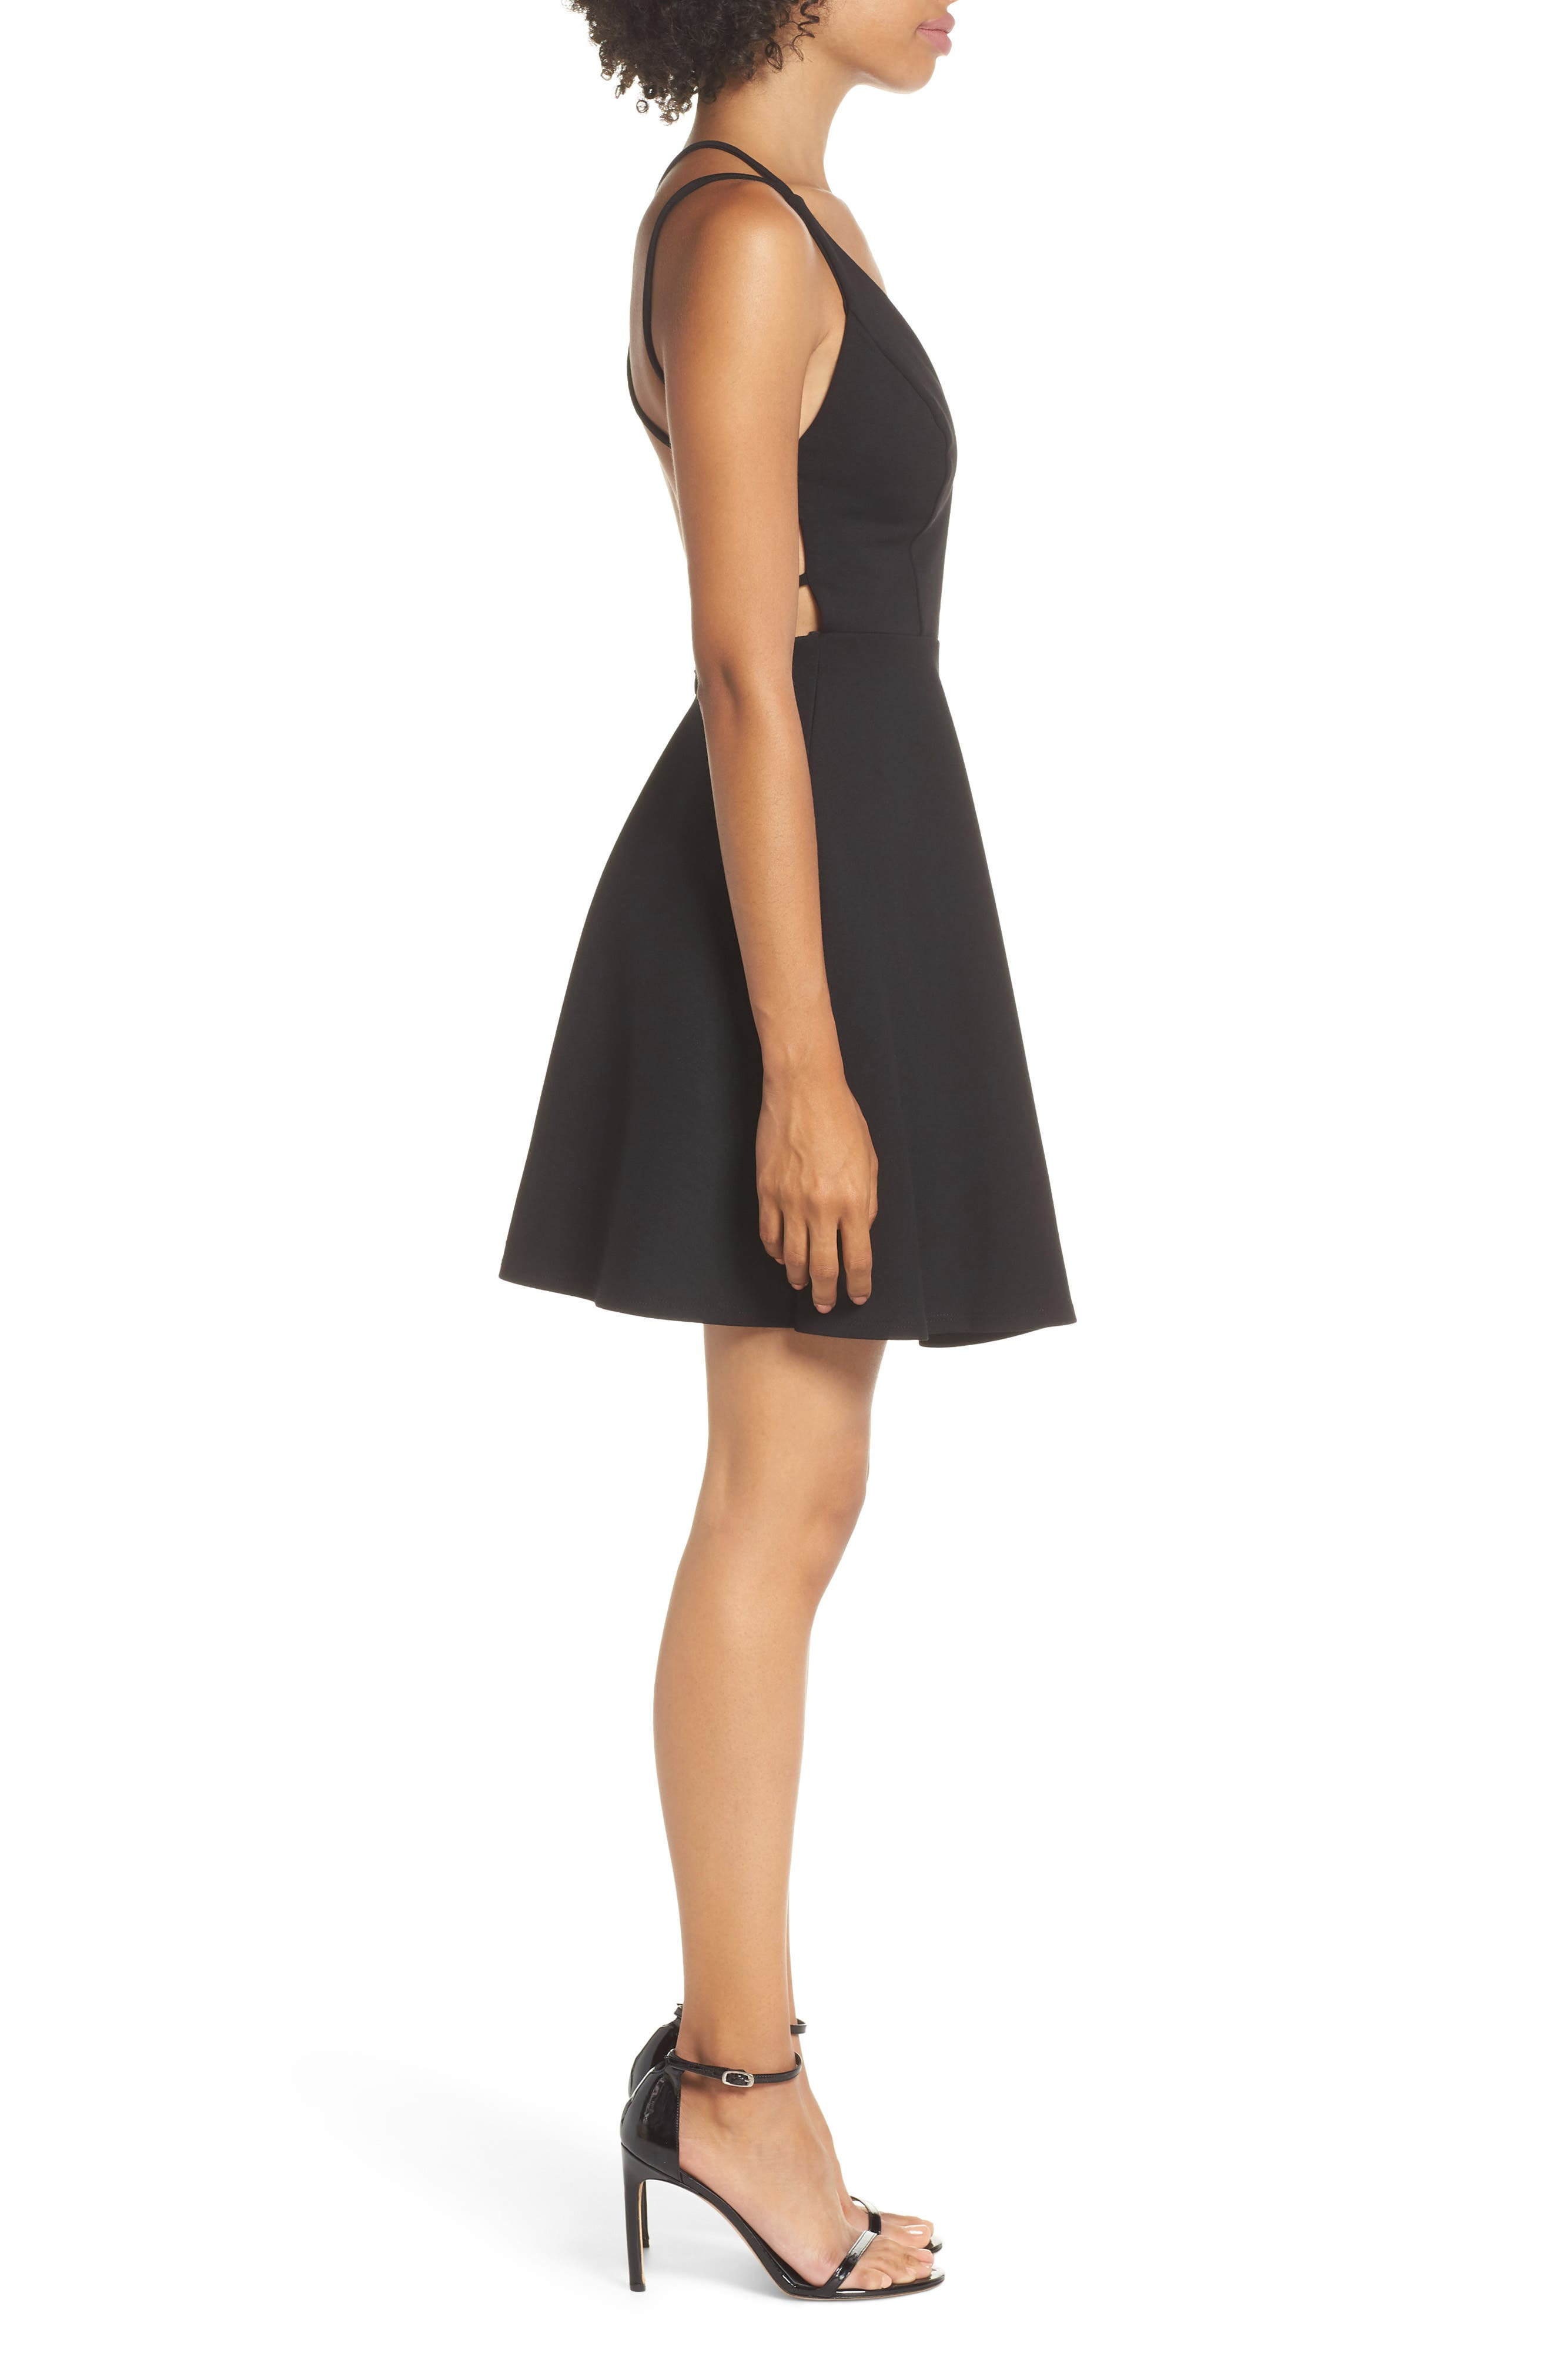 LULUS, Believe in Love Strappy Back Skater Dress, Alternate thumbnail 4, color, BLACK